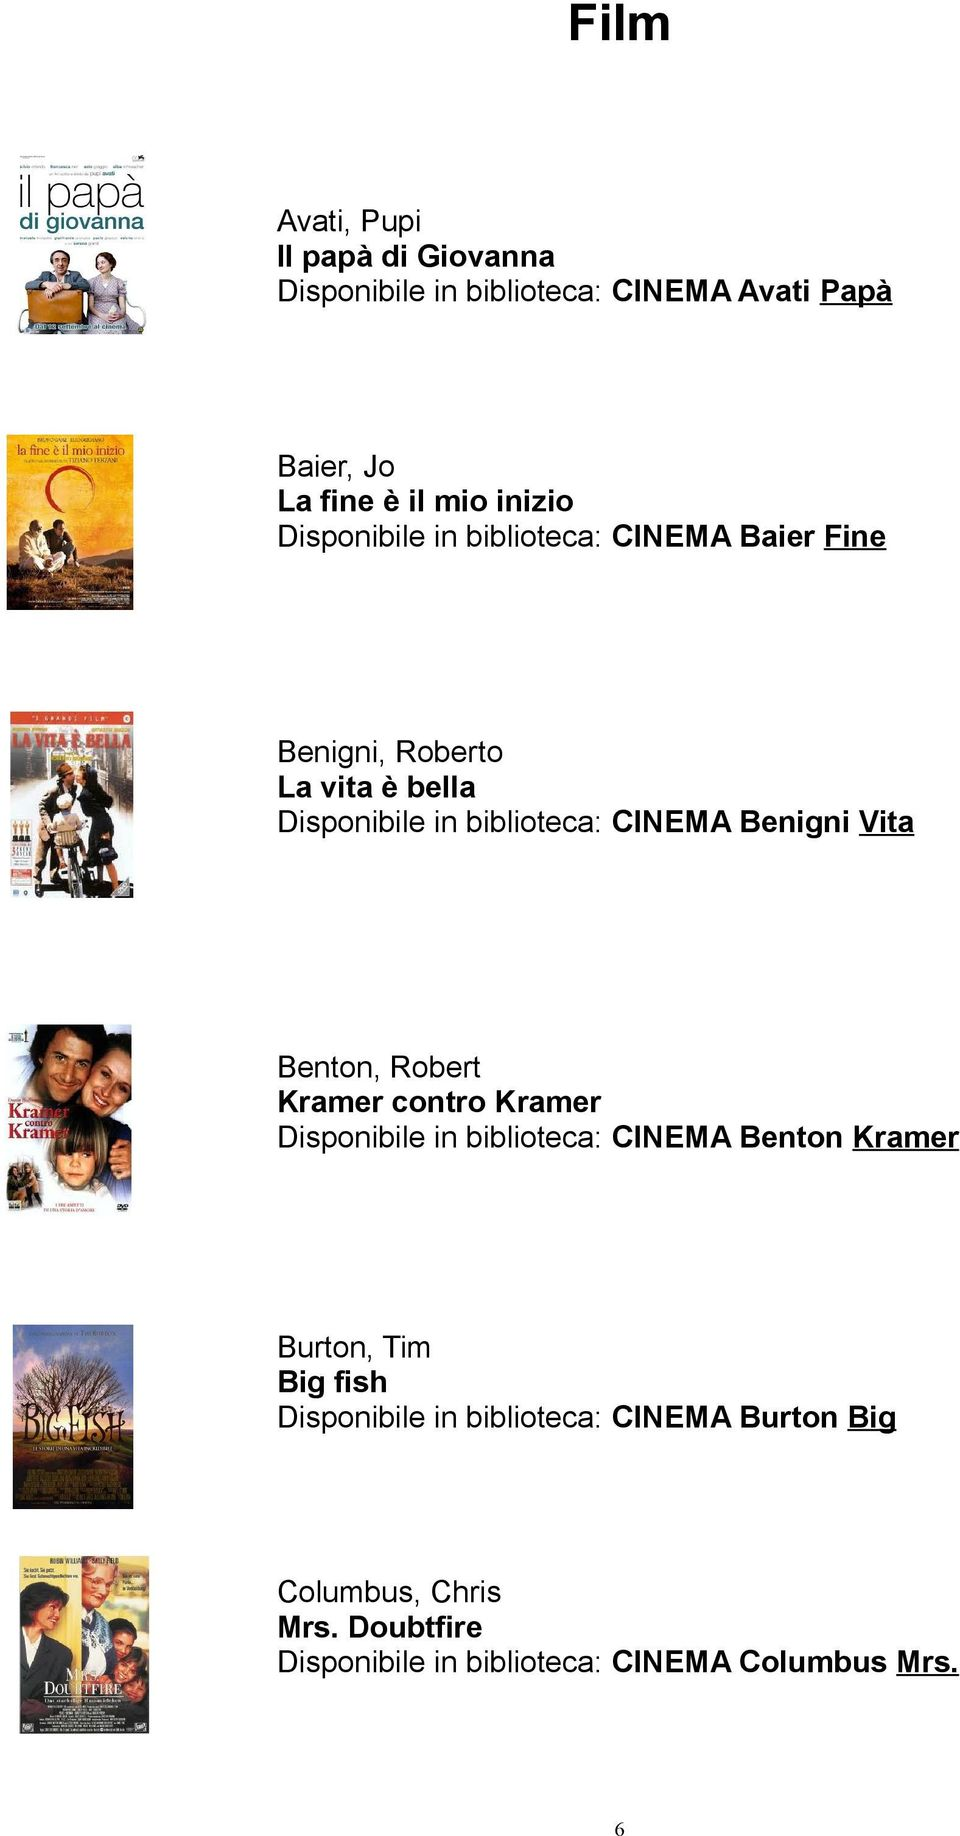 Benigni Vita Benton, Robert Kramer contro Kramer Disponibile in biblioteca: CINEMA Benton Kramer Burton, Tim Big fish